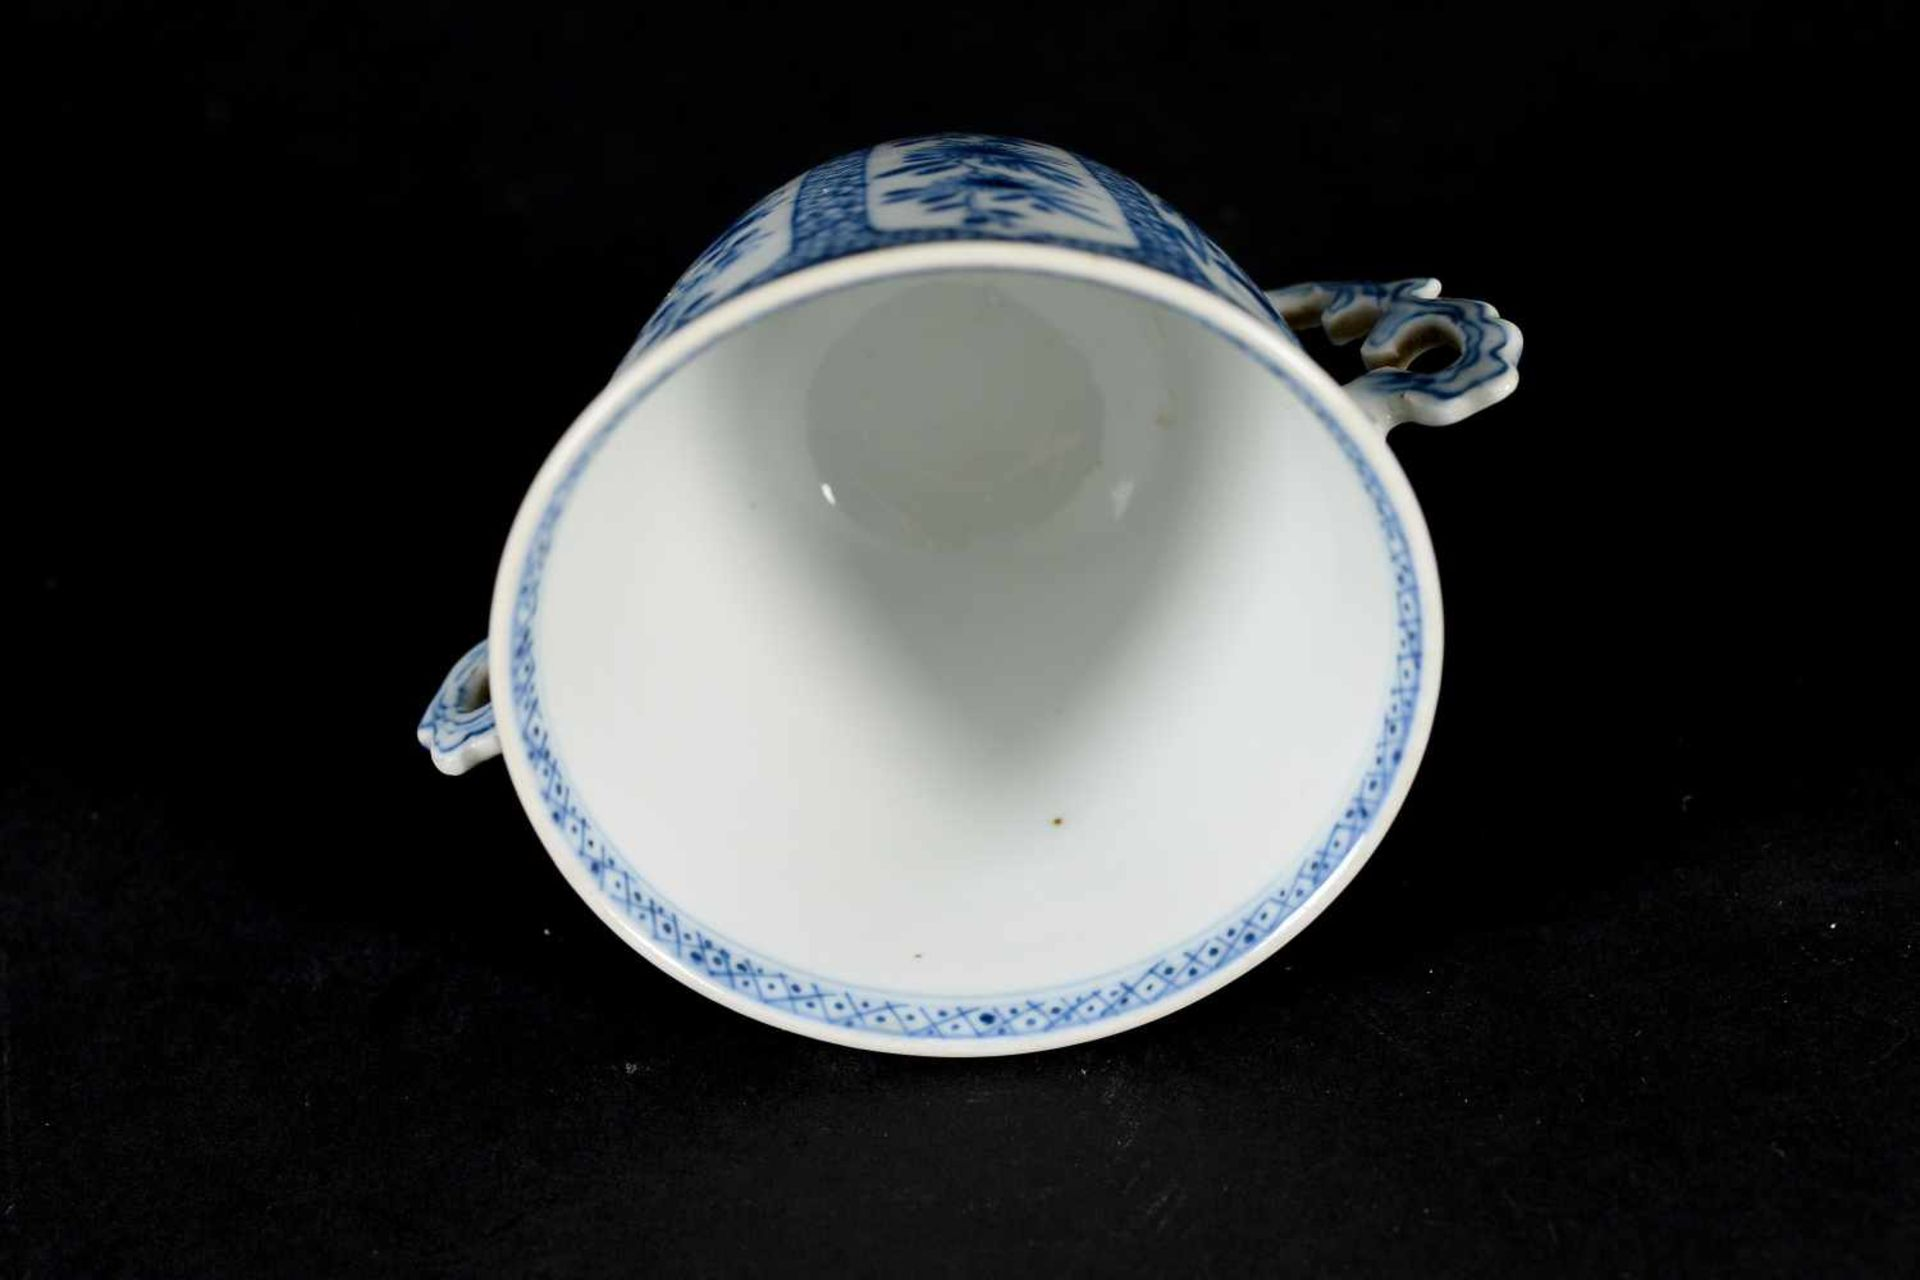 A blue and white porcelain lidded cup with two handles on a deep saucer, decorated with flowers. - Bild 8 aus 9